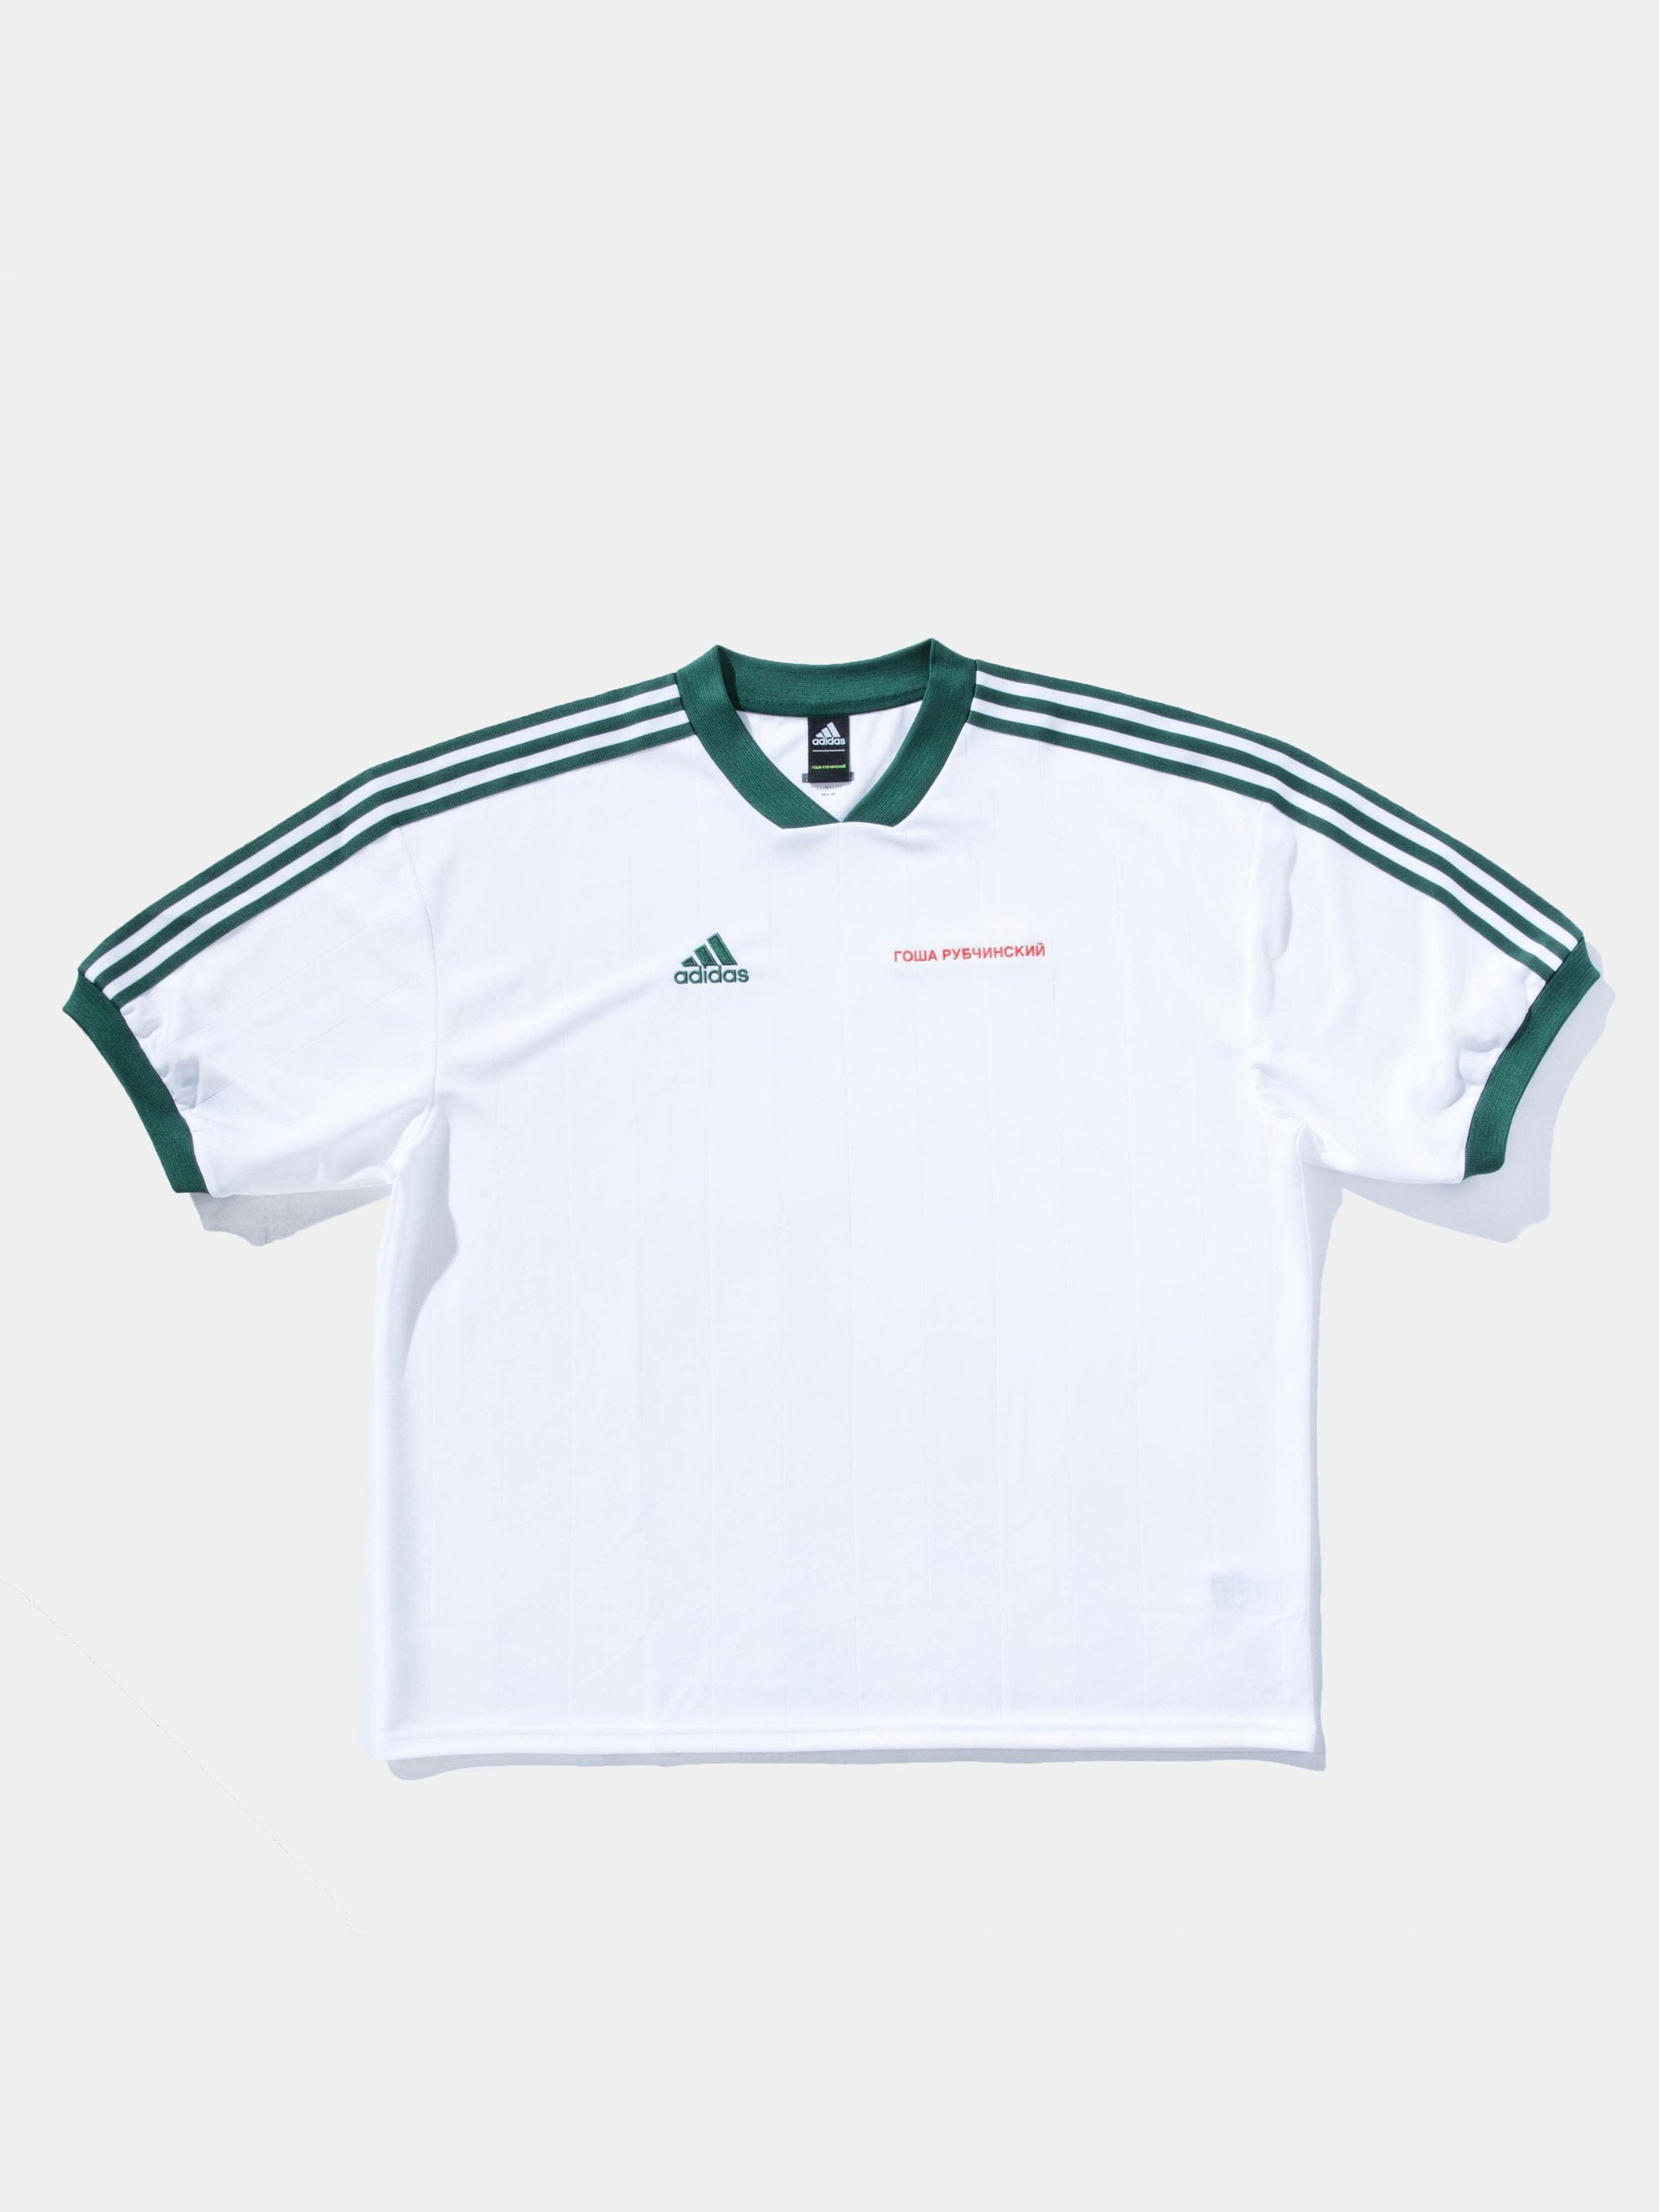 White/Green Stripes Adidas Soccer Jersey 1